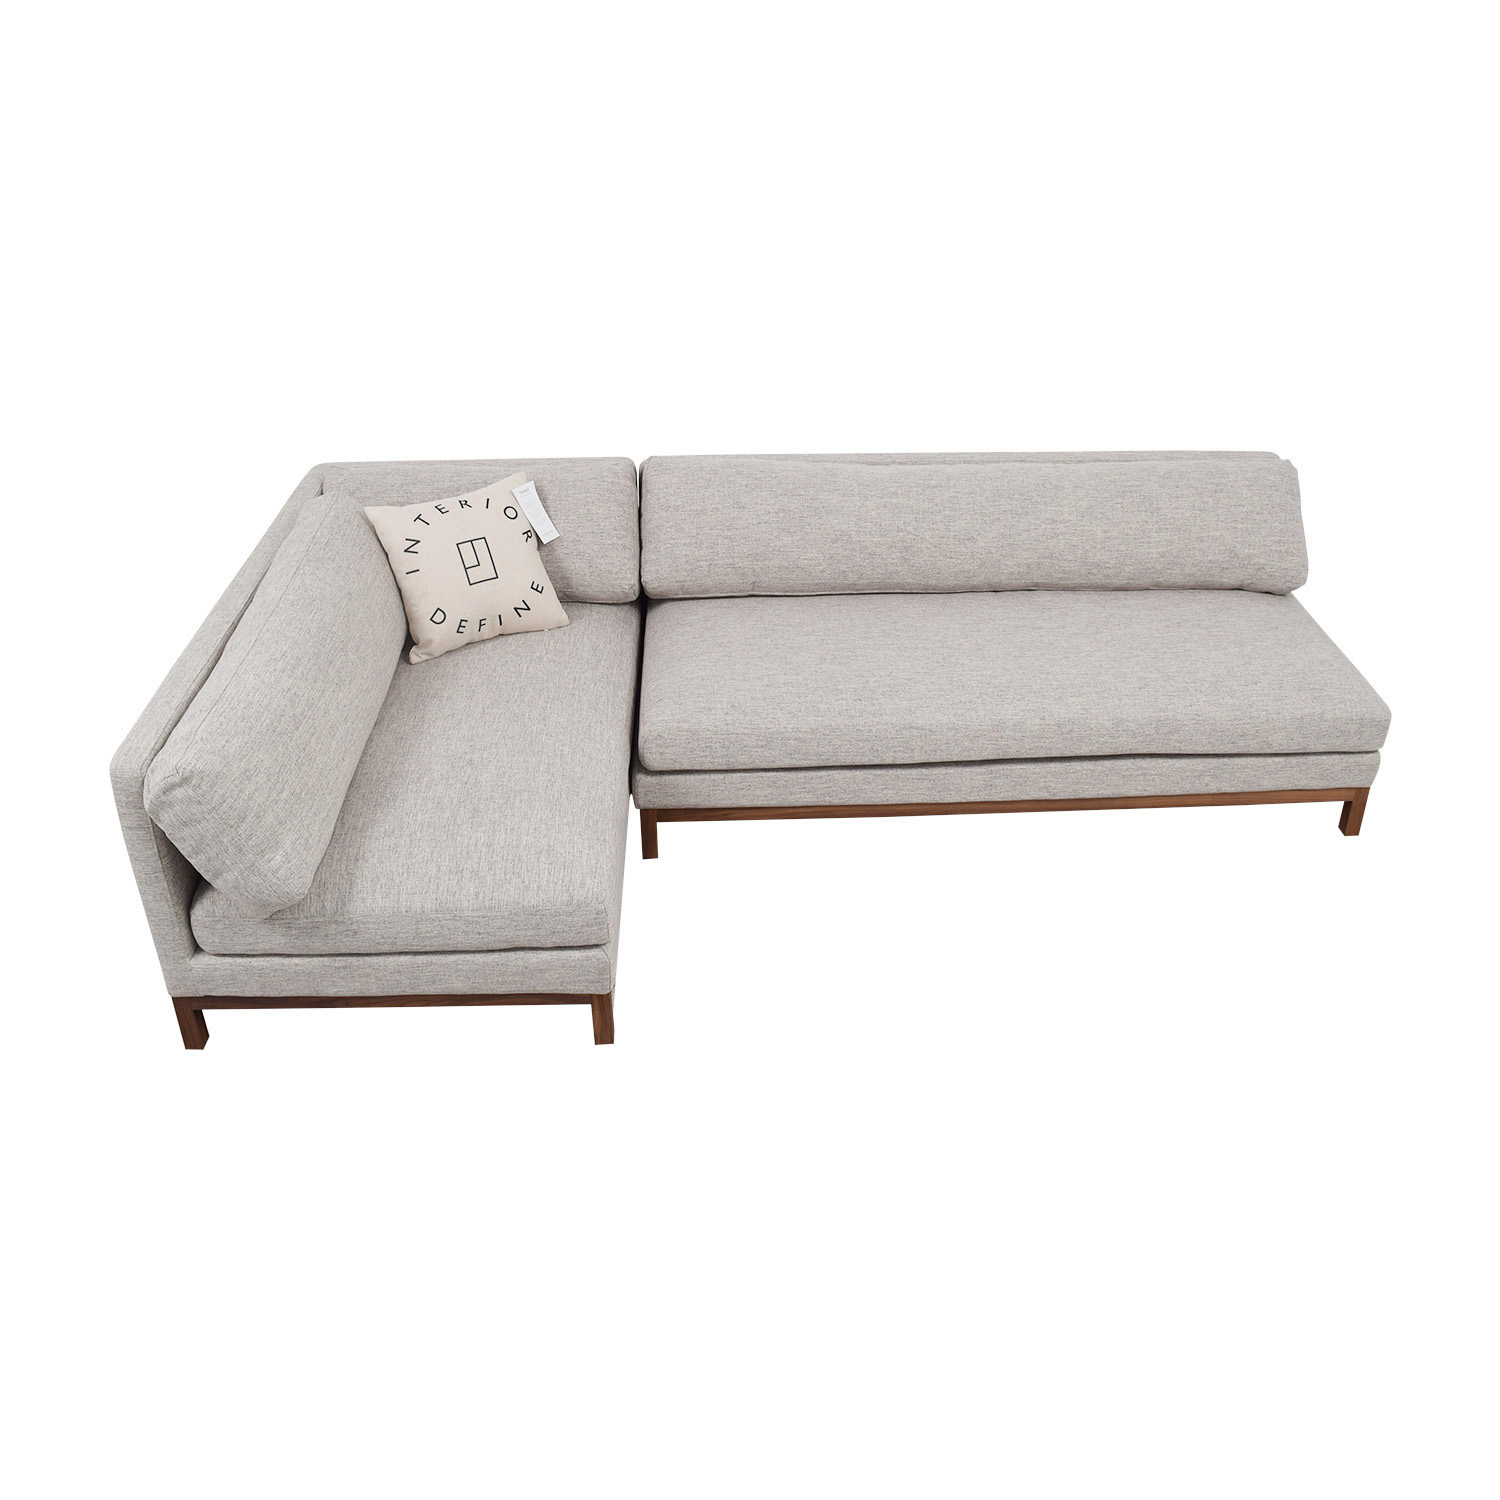 Jasper Heather Grey Left Chaise Sectional for sale